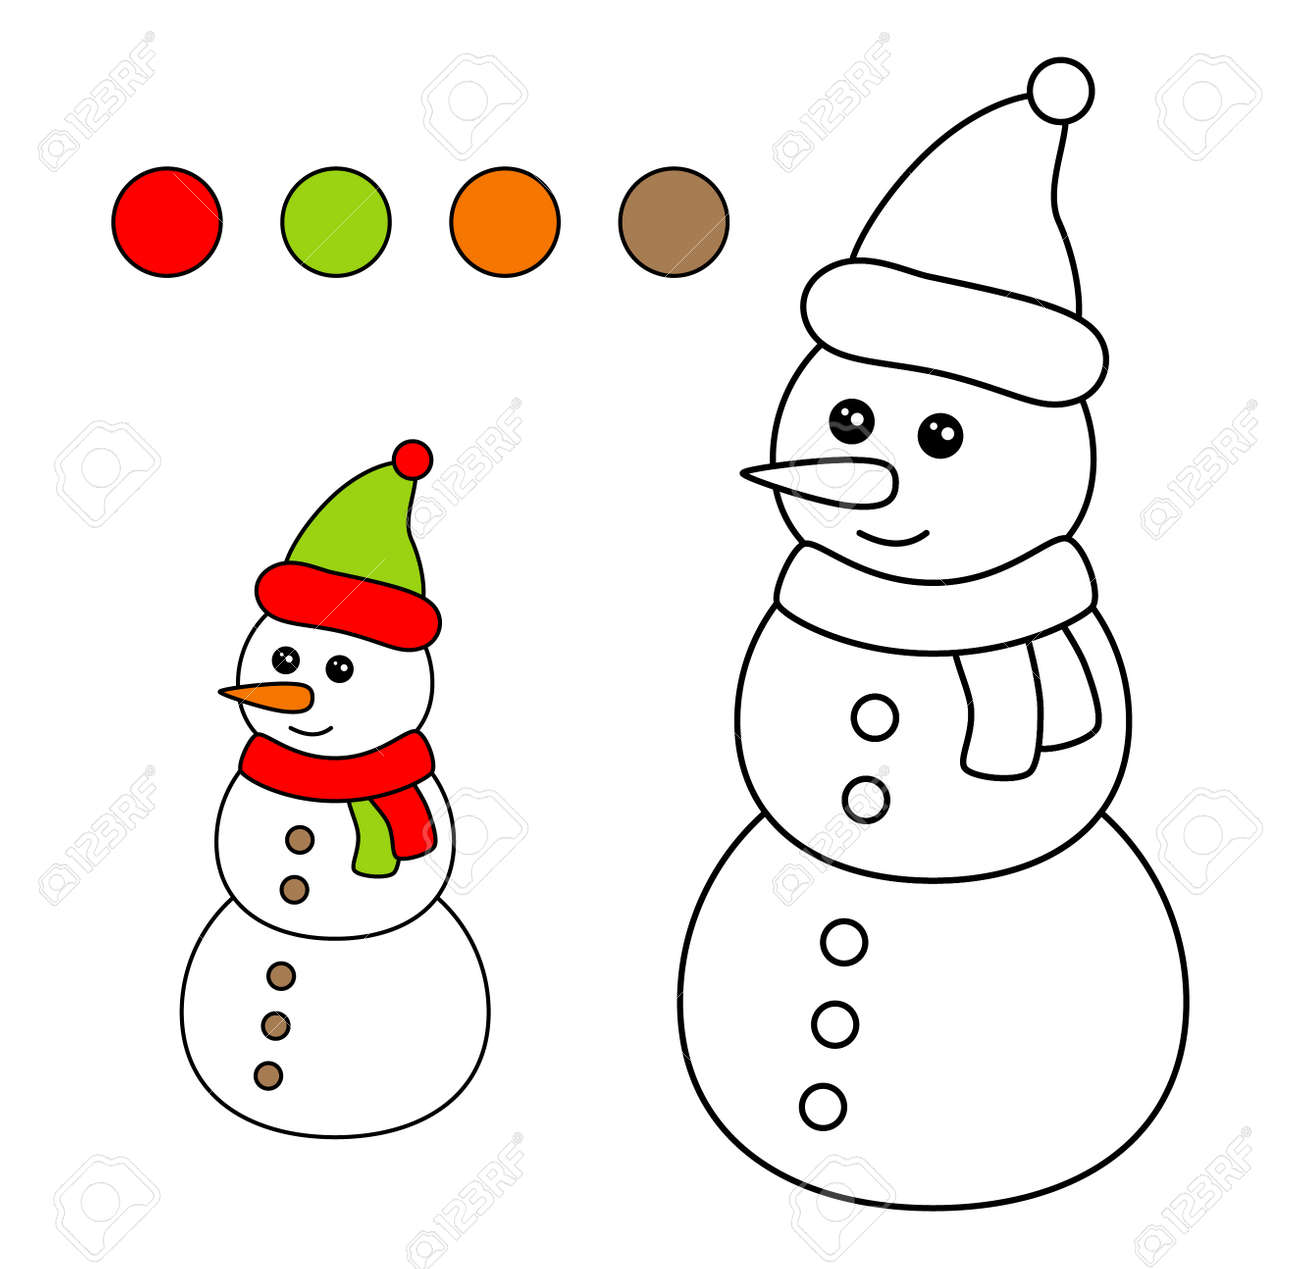 Christmas Images For Drawing.Coloring Book For Children Drawing Kids Activity Christmas